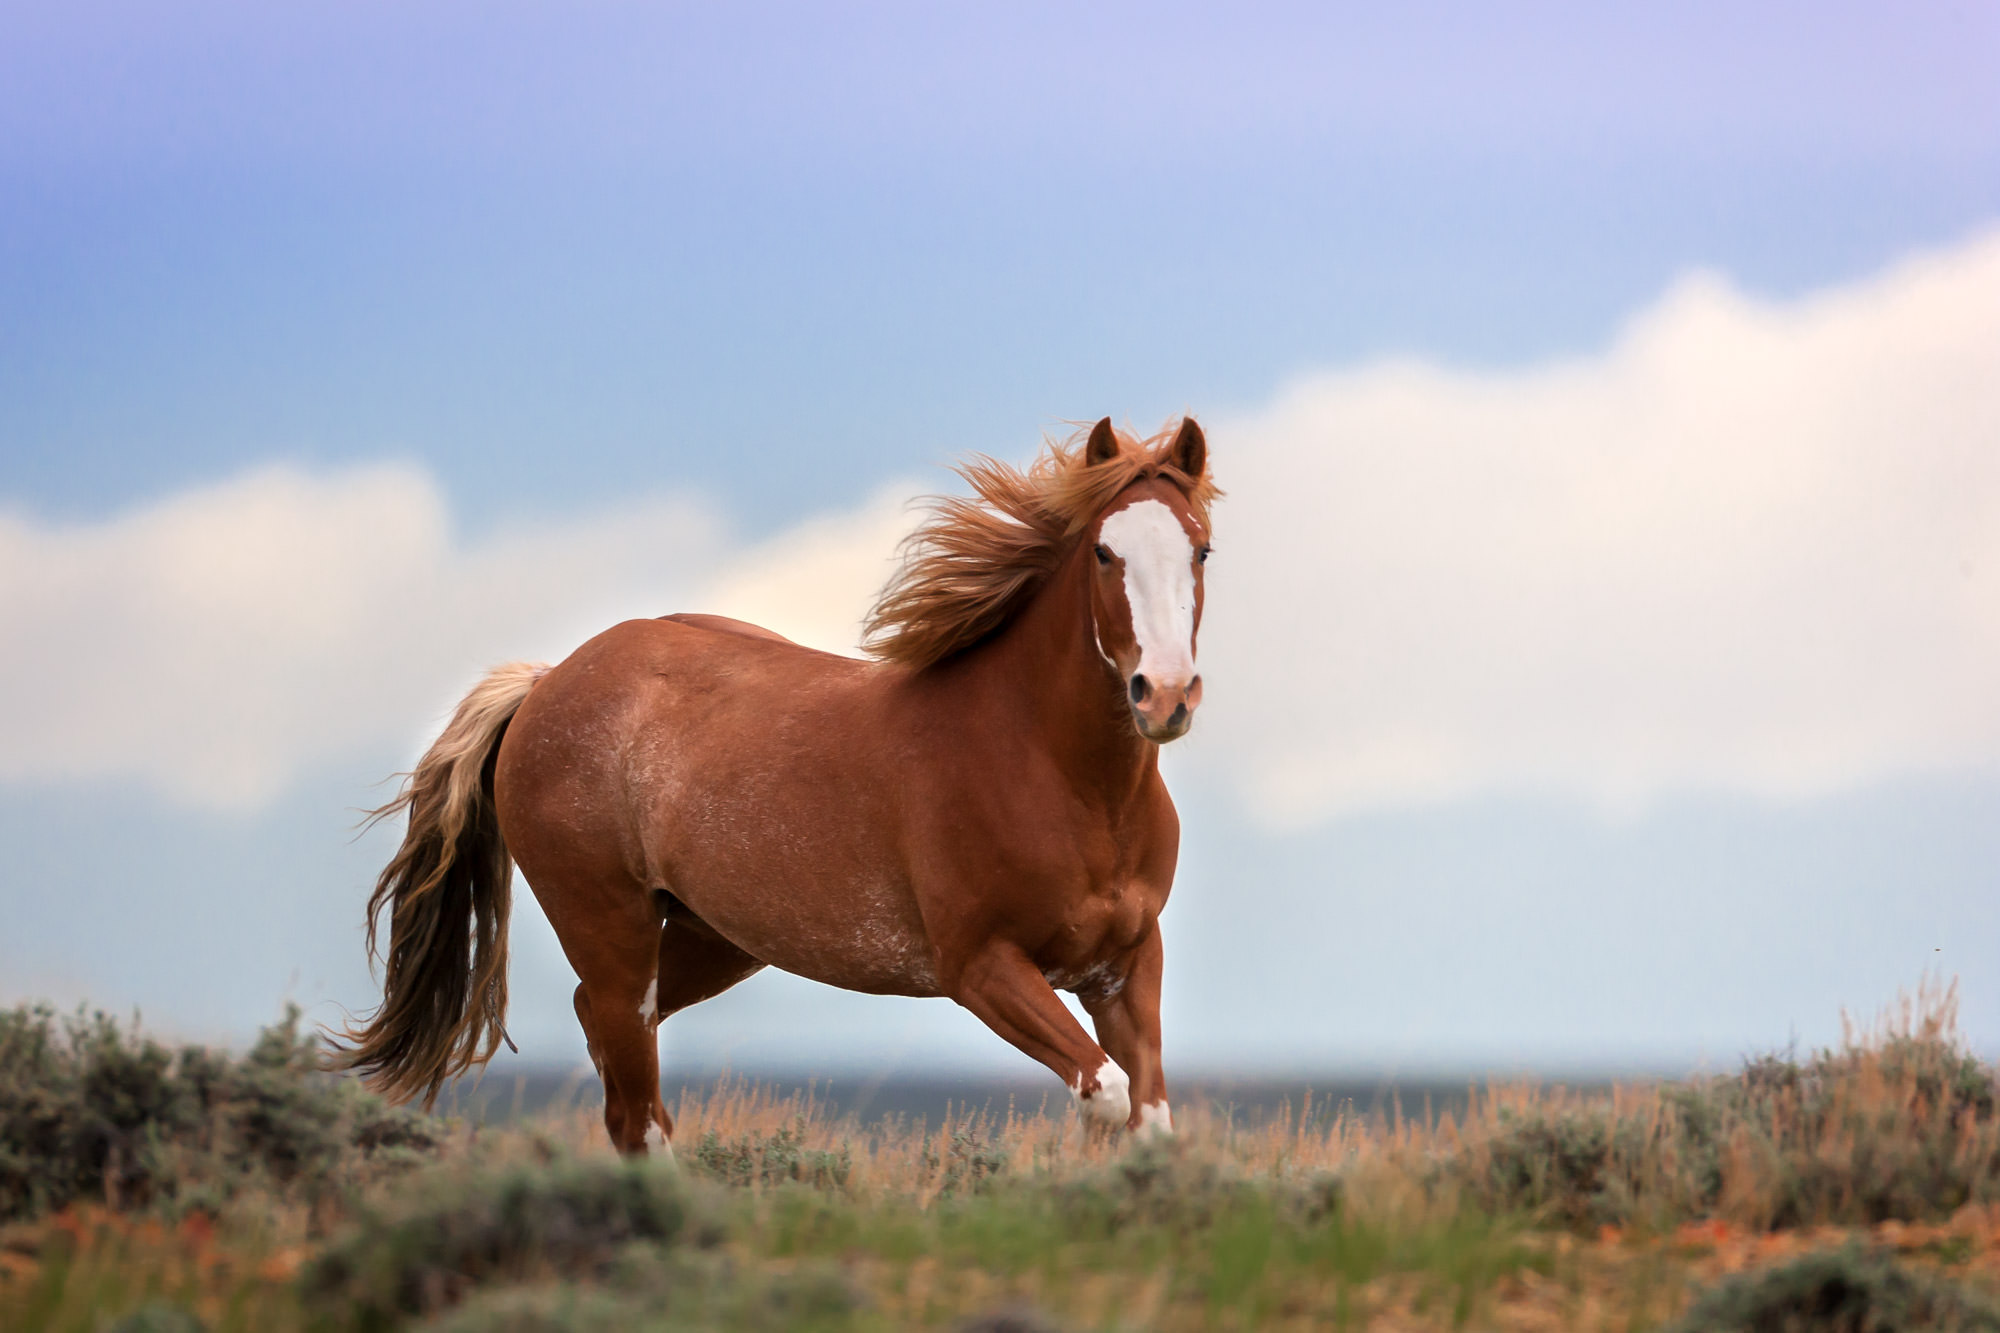 Wild Horse Fine Art Photography A Limited Edition photograph of a Wild Horse running around in an open field in Southern Wyoming...